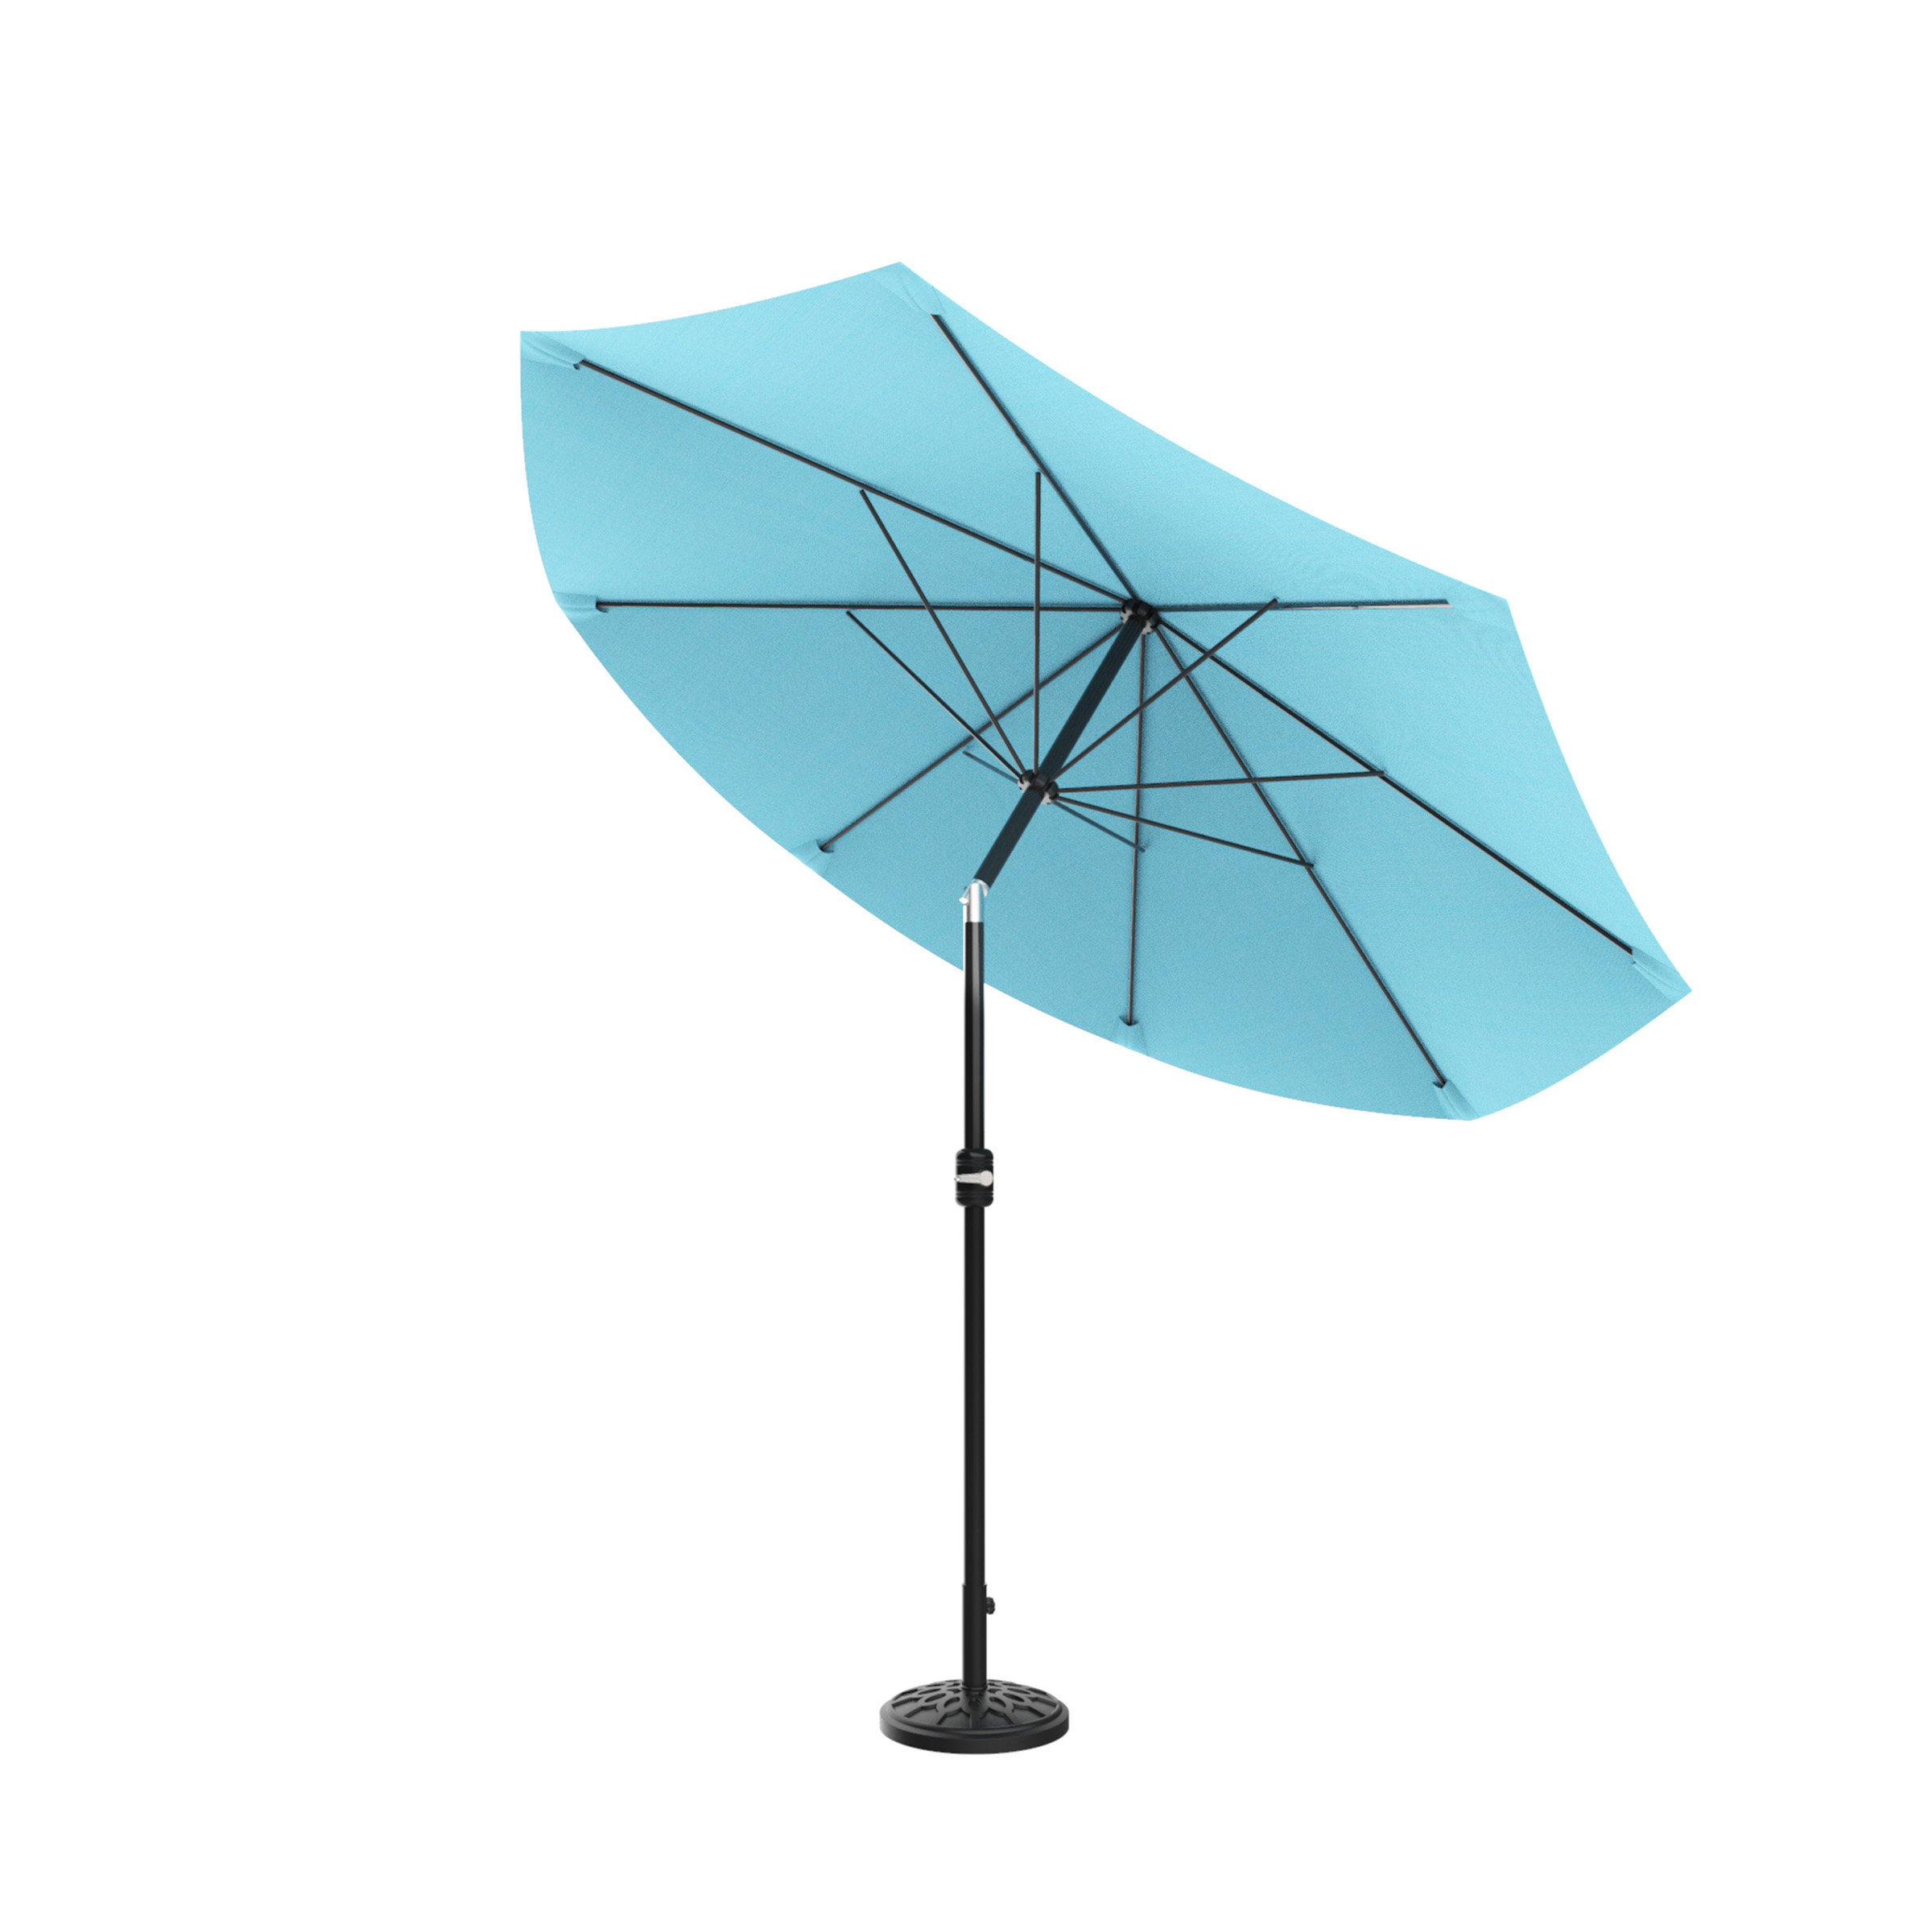 Kelton 10' Market Umbrella Within Most Recent Kenn Market Umbrellas (View 8 of 20)